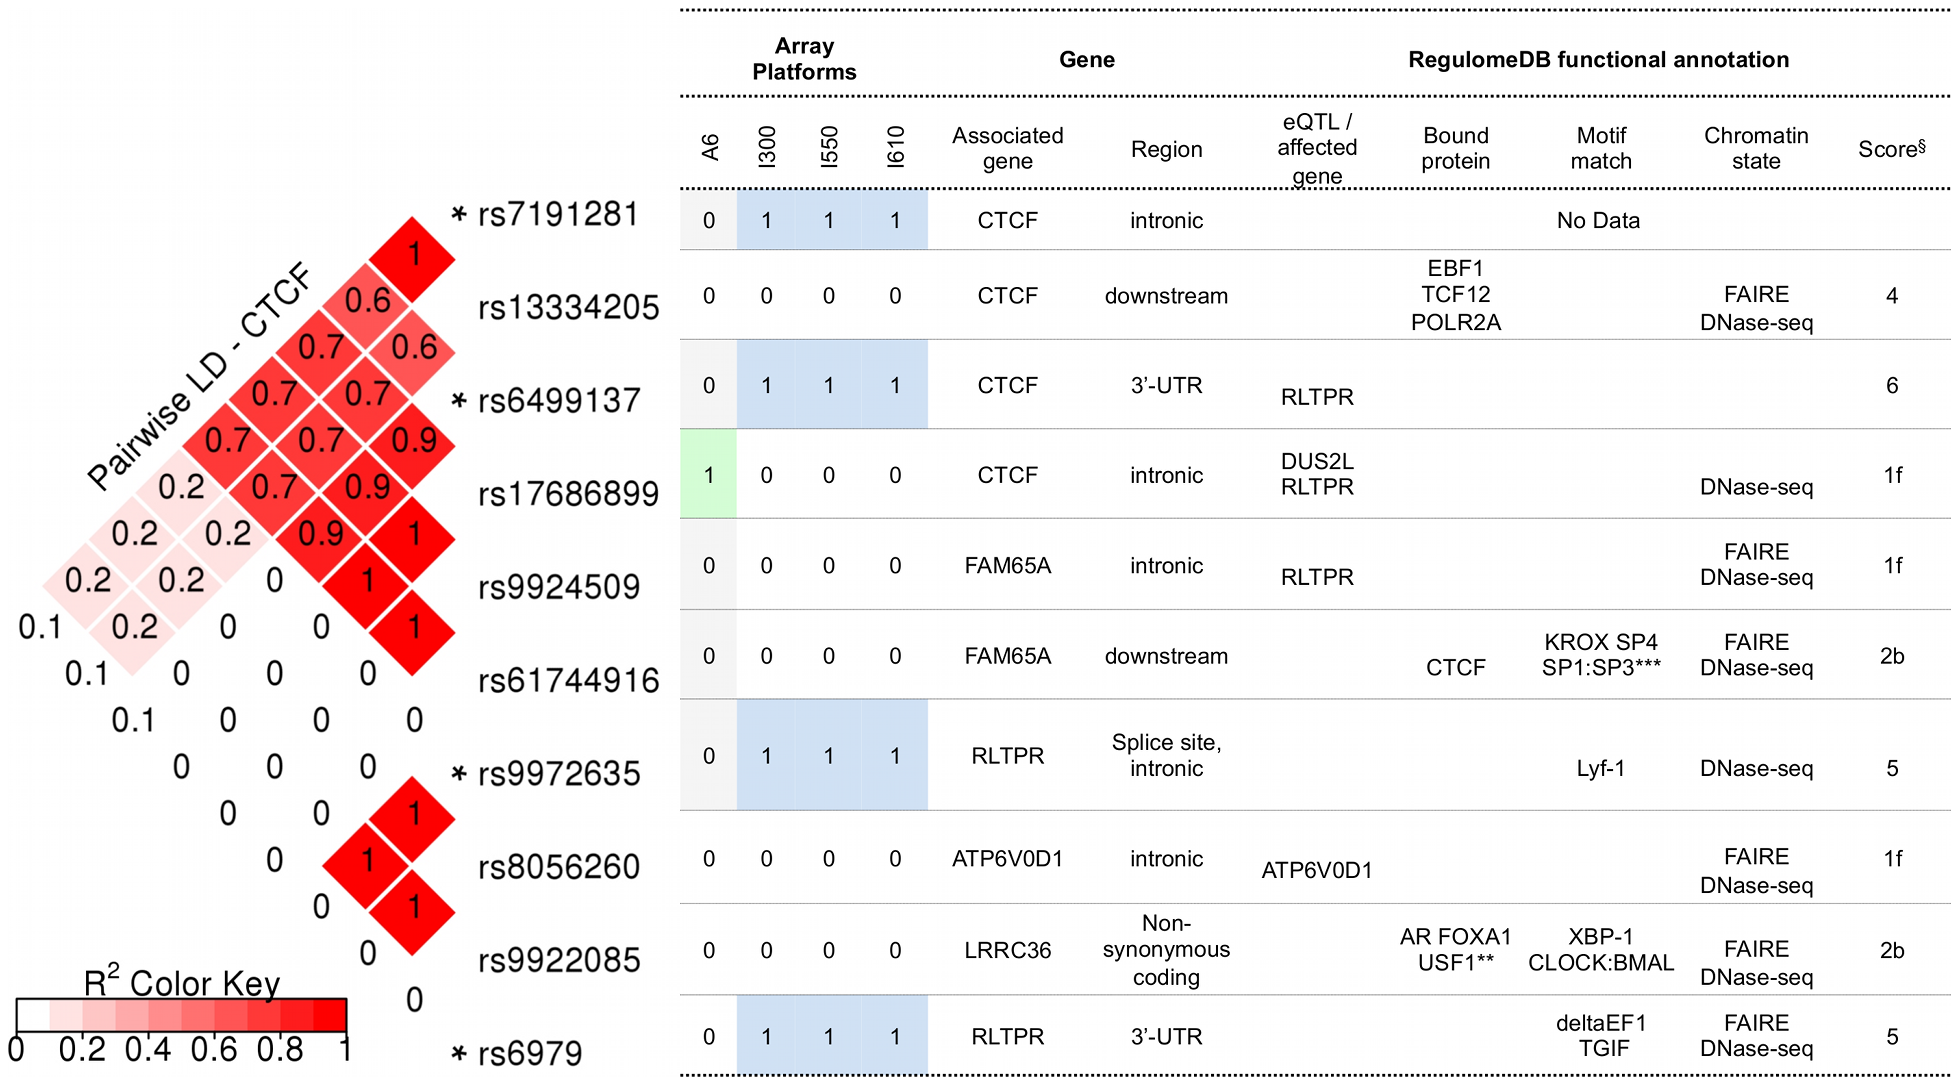 RegulomeDB functional annotation for SNPs in CTCF and its regulatory regions.